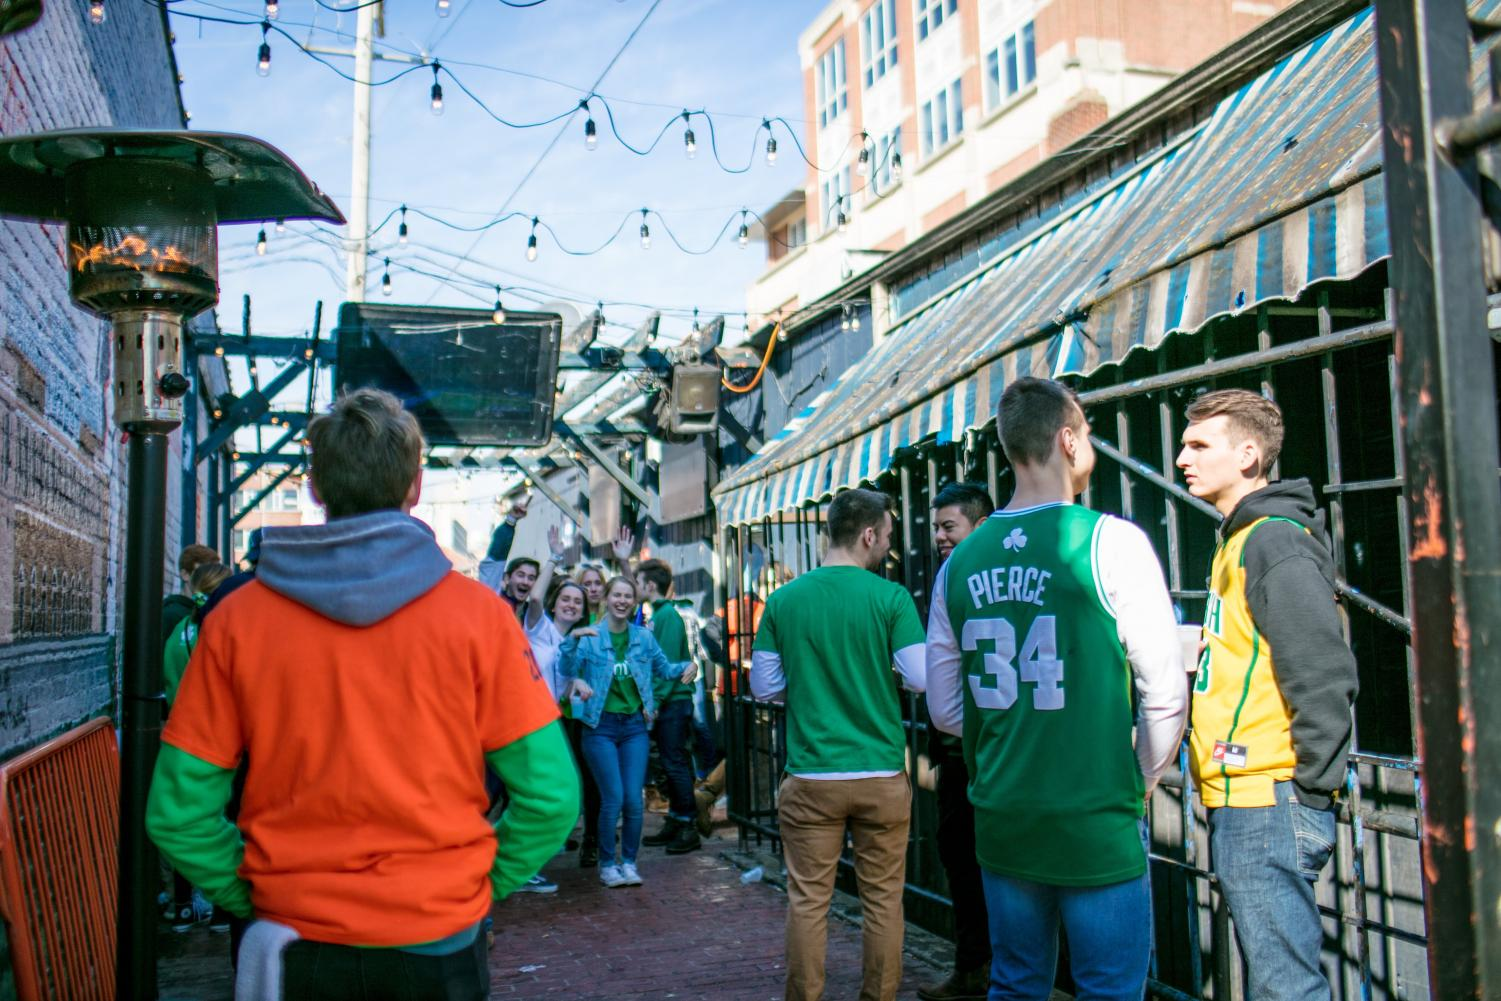 Unofficial+participants+celebrate+at+KAM%27s%2C+618+E.+Daniel+St.+in+Champaign%2C+on+Friday.+Unofficial+St.+Patrick%27s+Day+is+an+annual+celebration+in+which+participants+wear+green+clothing+and+binge+drink+throughout+the+day.+The+event+is+not+sponsored+by+the+University.